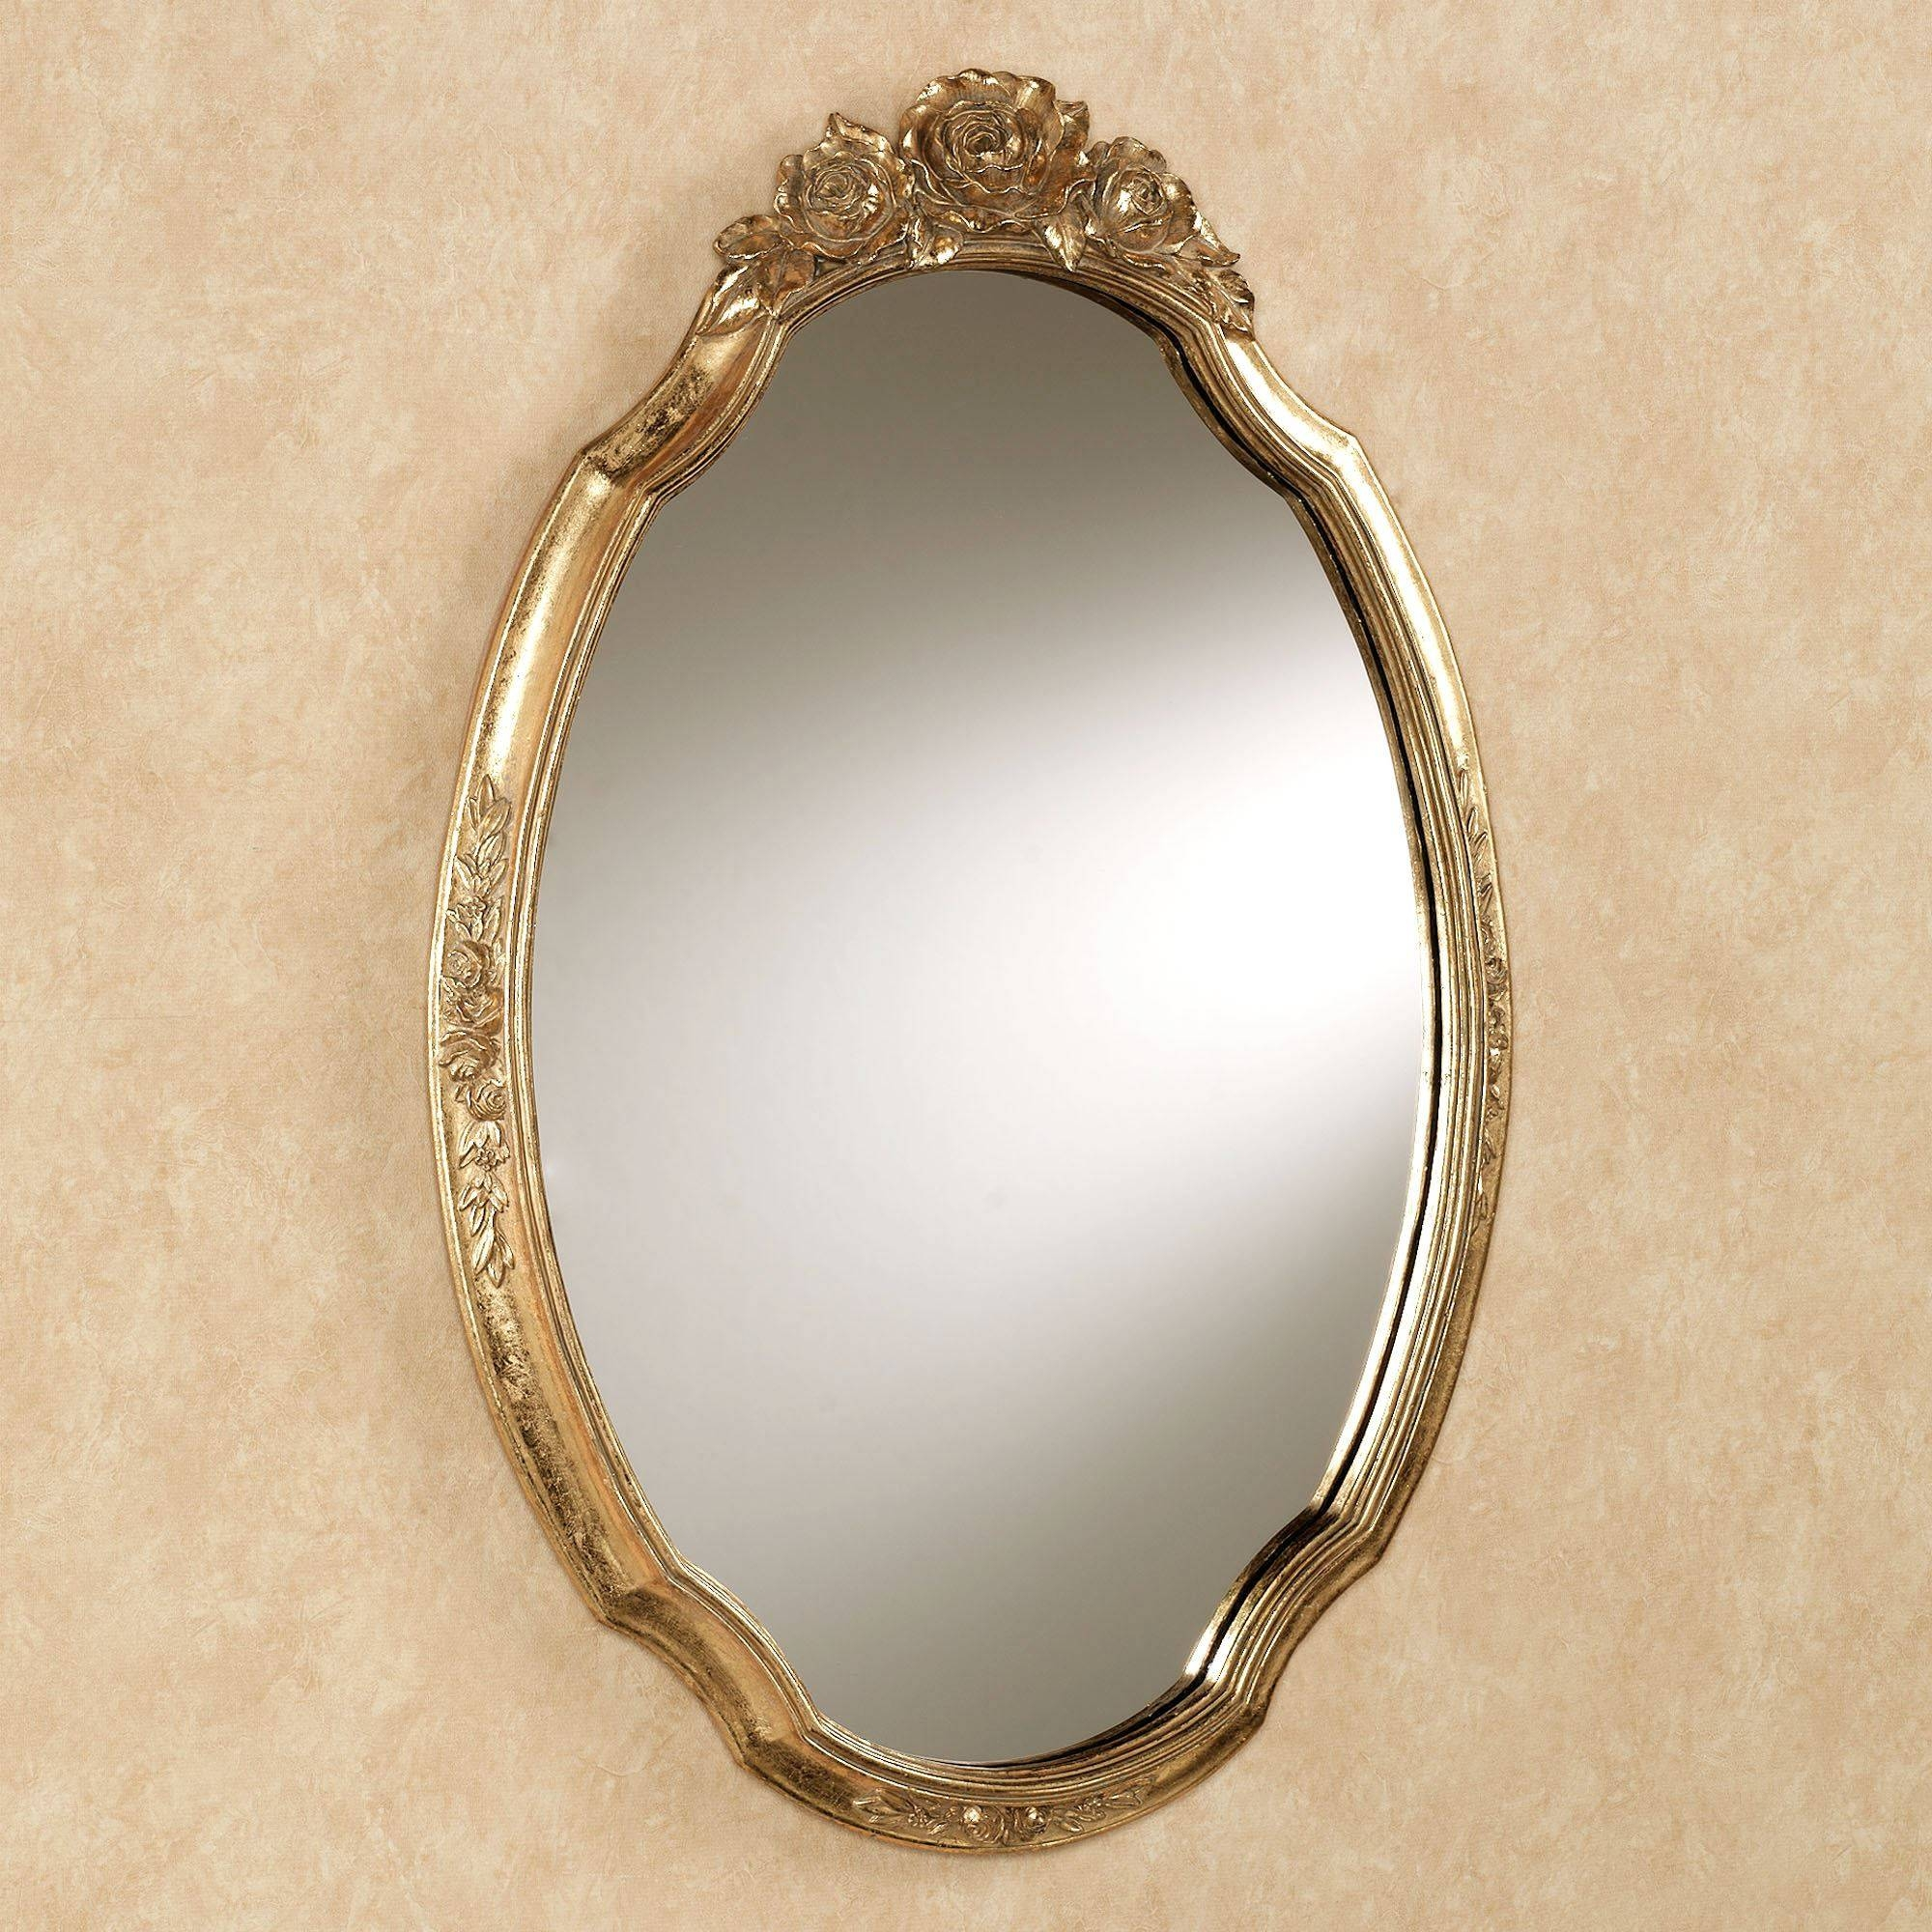 Jorah Rose Oval Wall Mirror pertaining to Oval Wall Mirrors (Image 14 of 25)